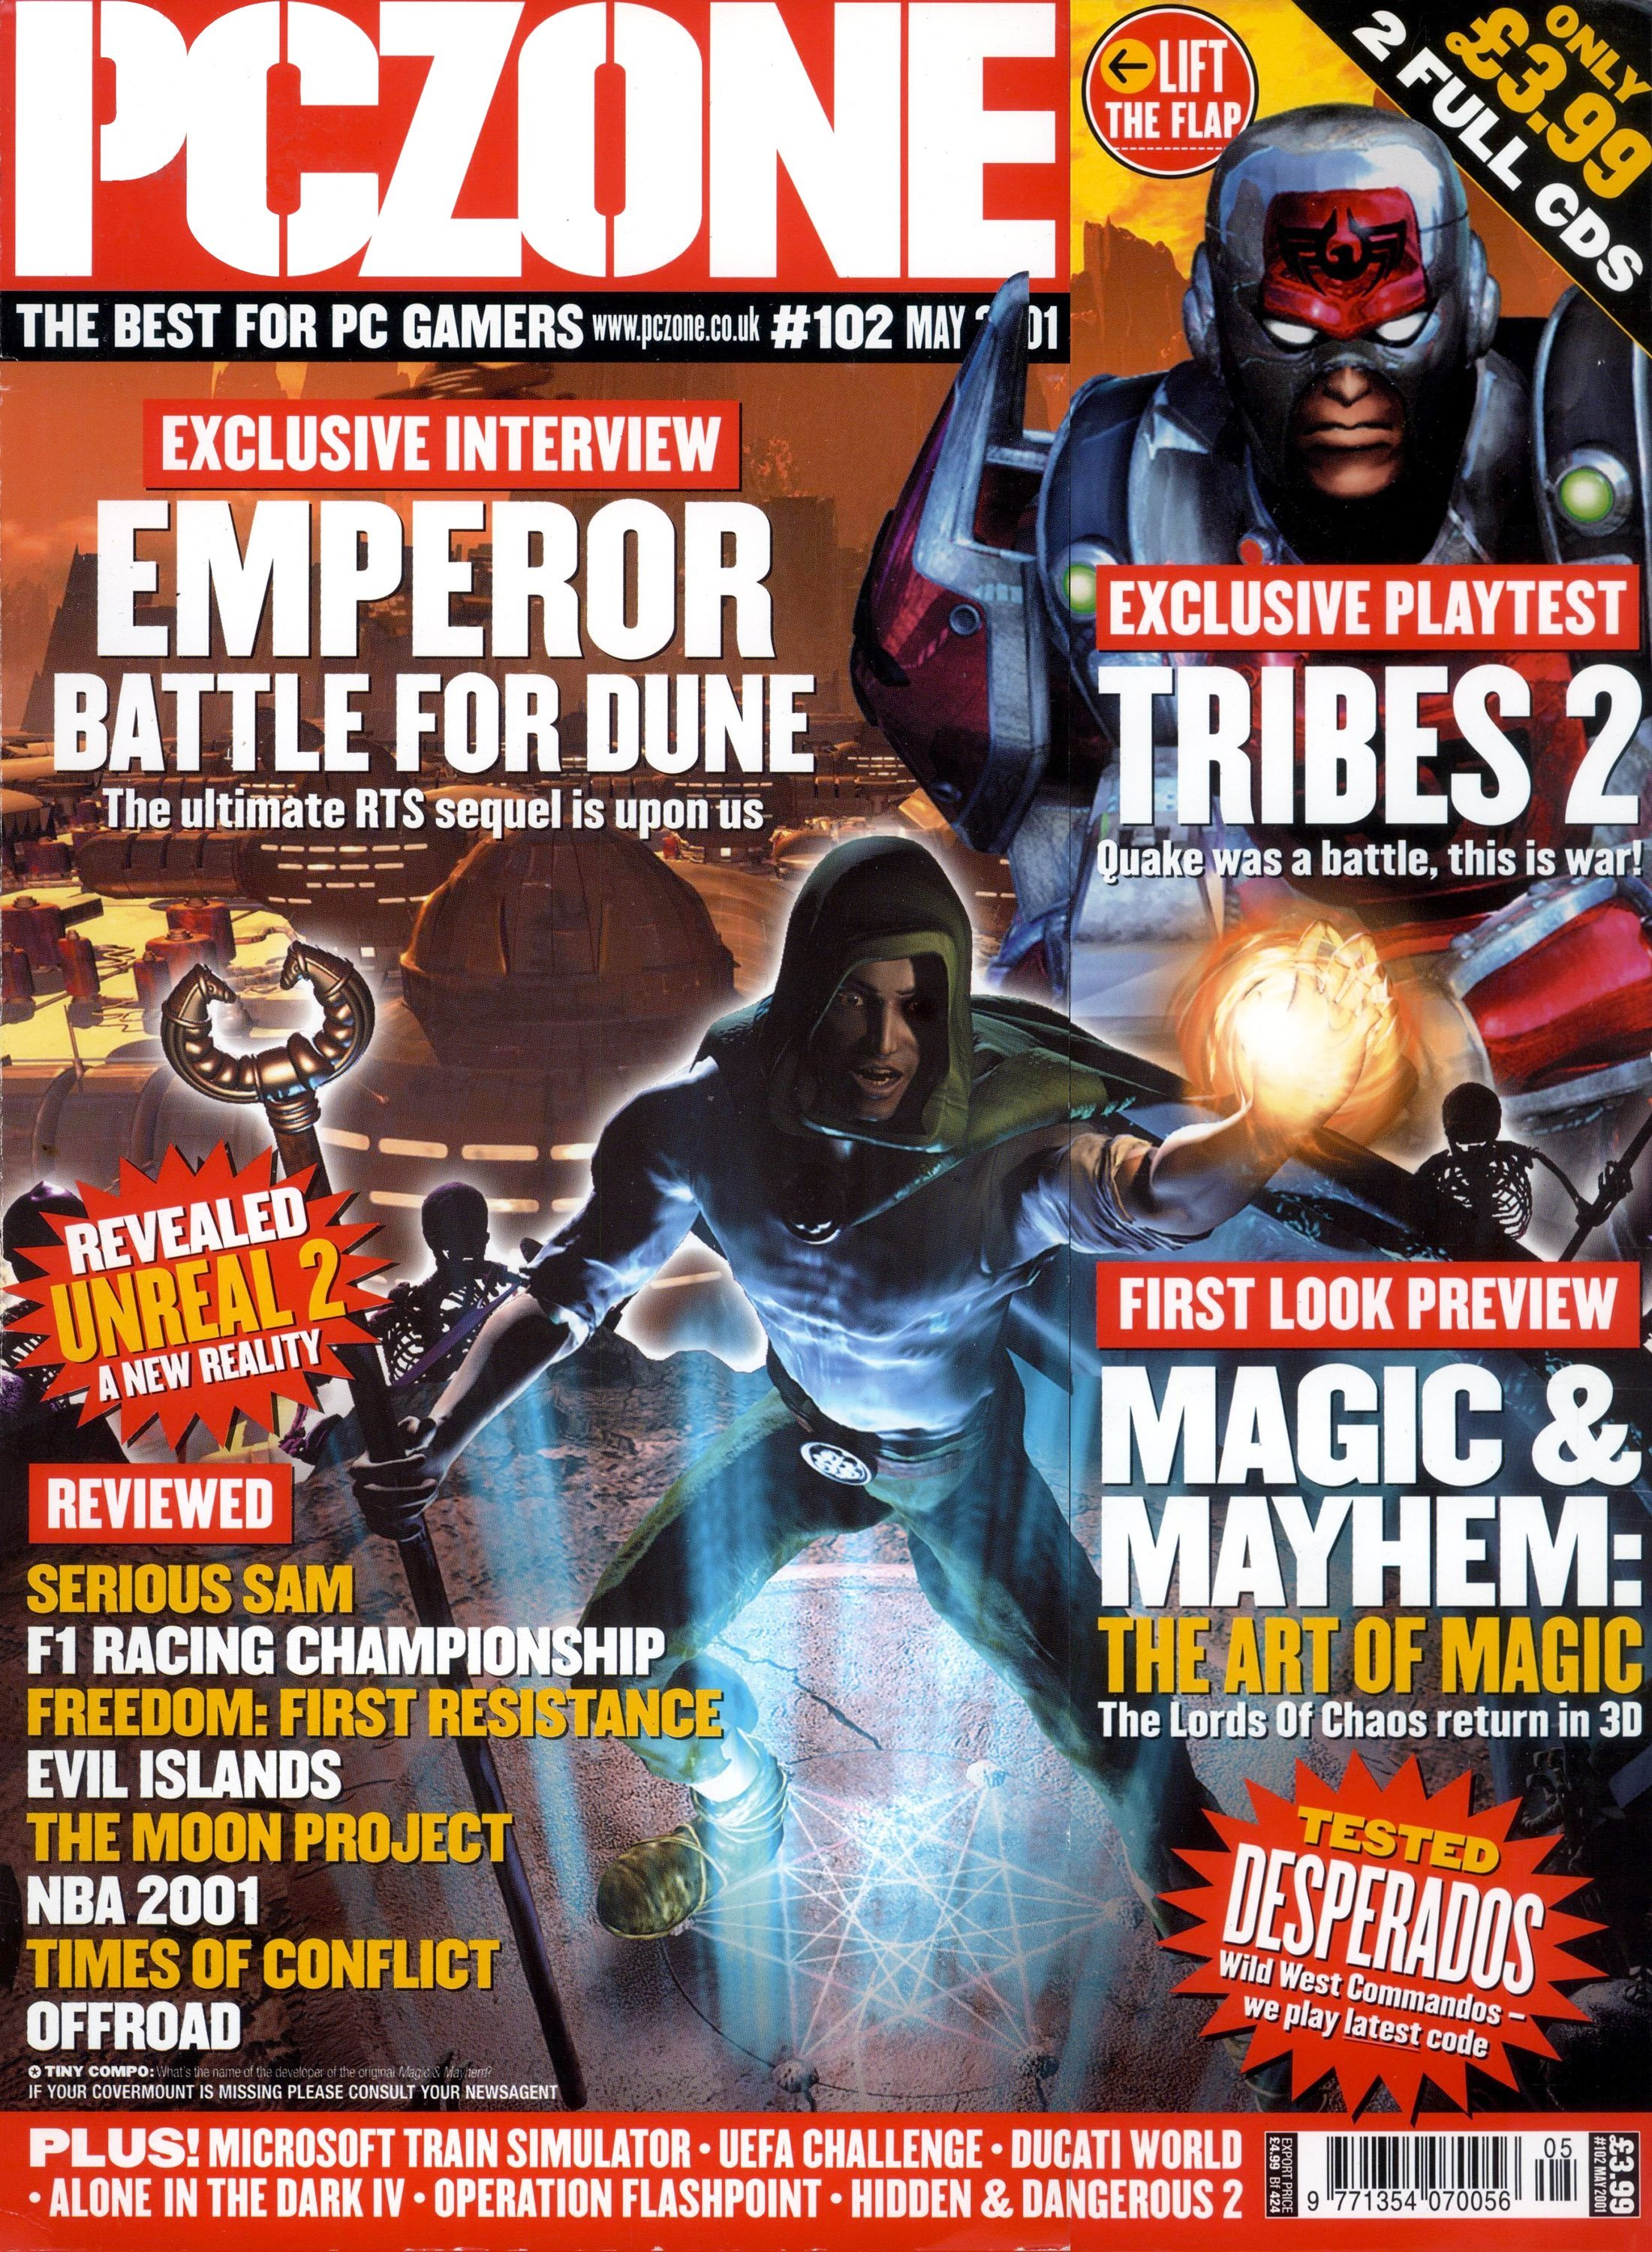 PC Zone Issue 102 (May 2001)